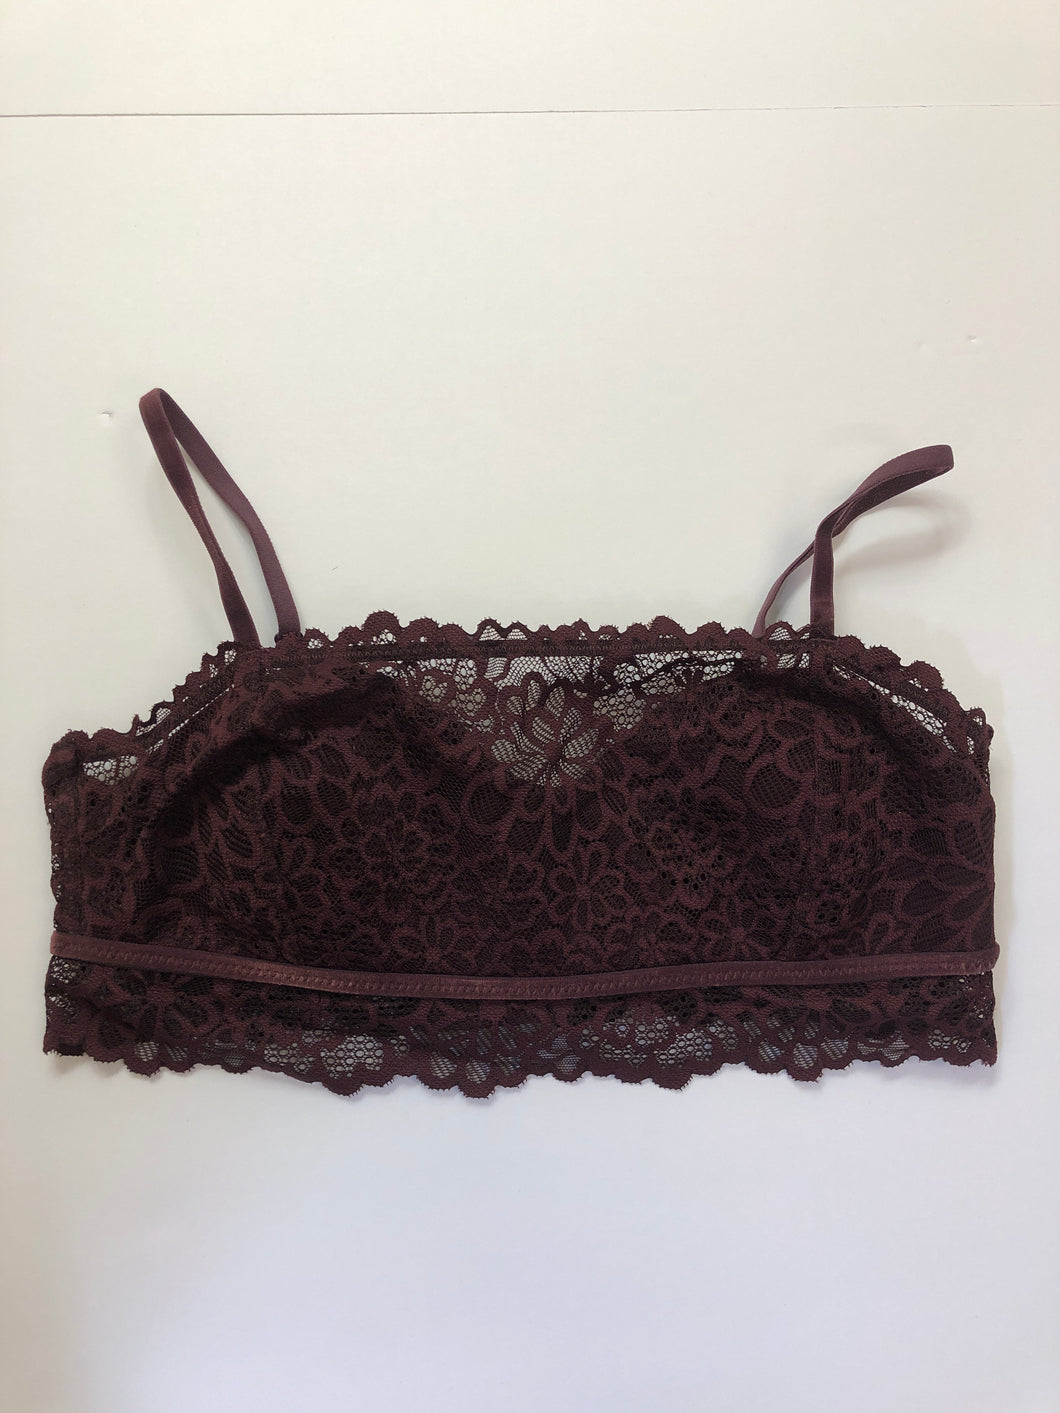 Gently Used Women's Aerie Bralette Size S